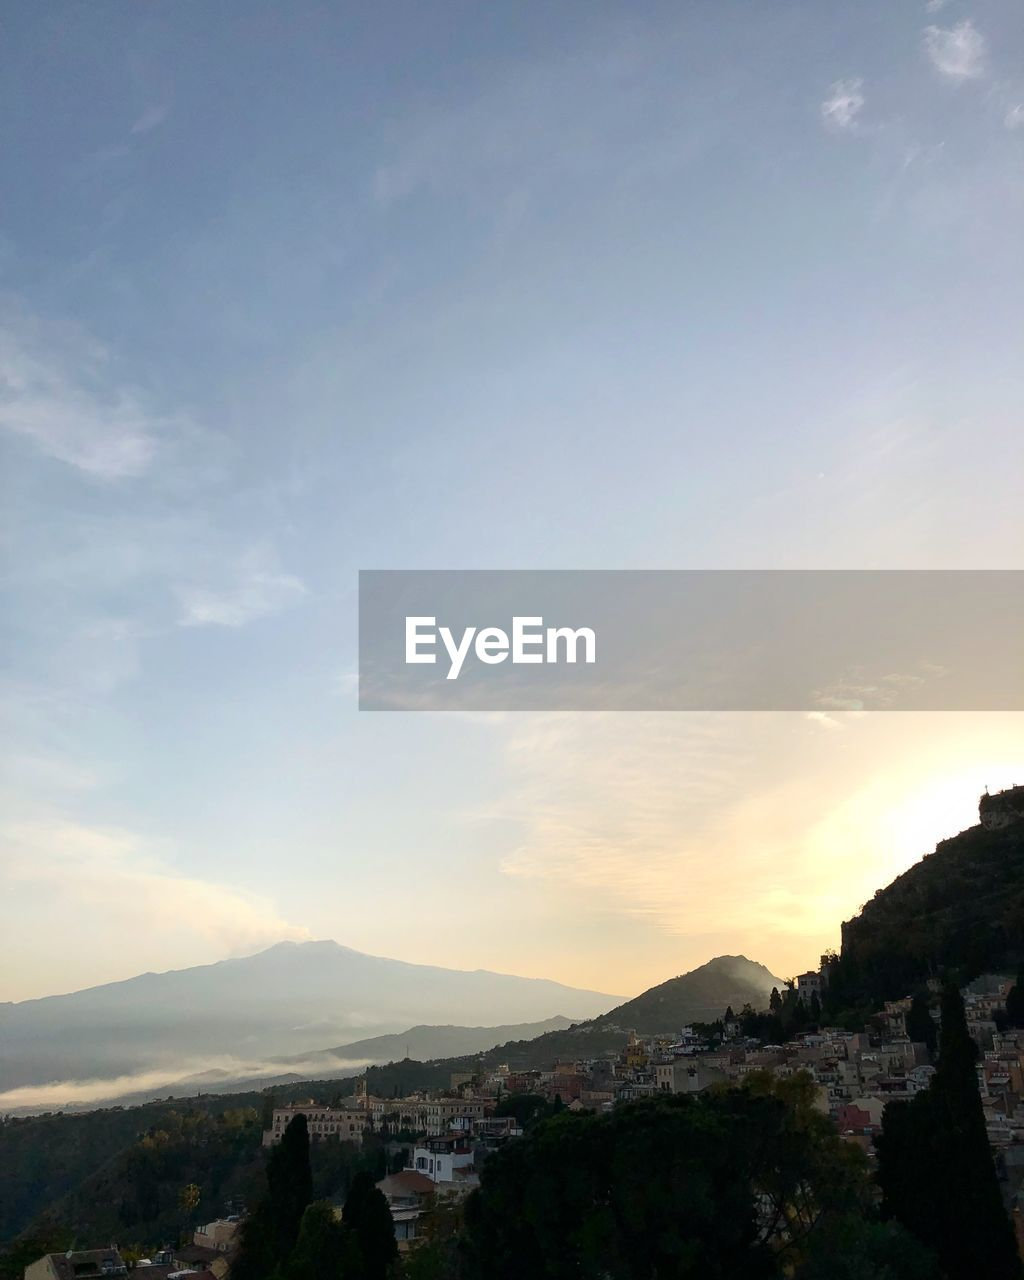 sky, mountain, cloud - sky, scenics - nature, beauty in nature, nature, sunset, architecture, building exterior, built structure, tranquility, environment, tranquil scene, landscape, outdoors, city, town, building, no people